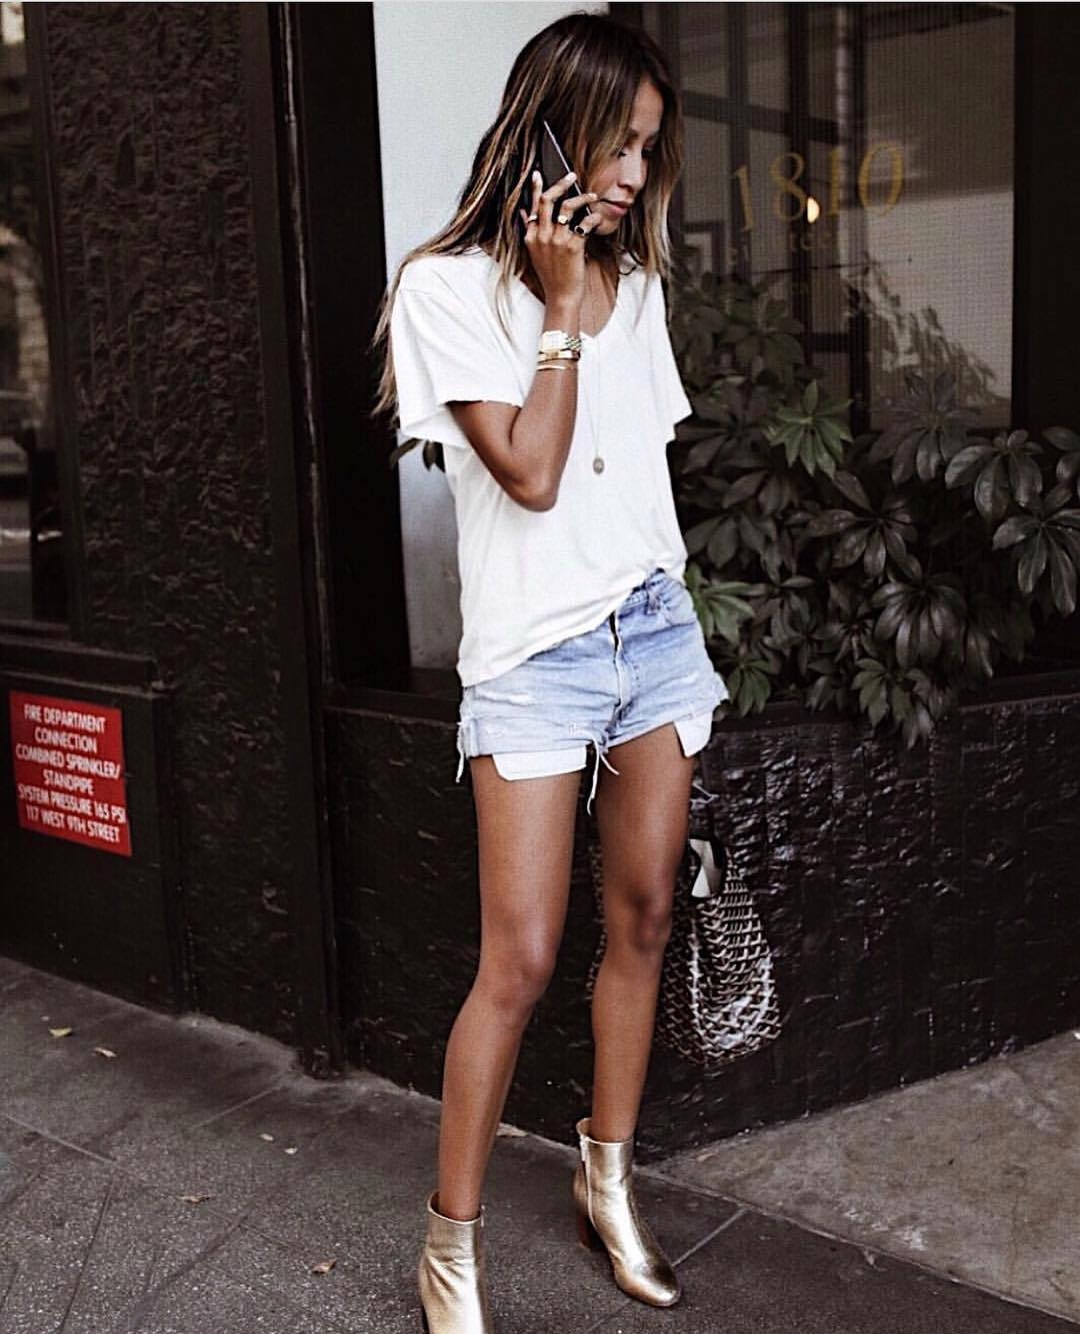 Oversized White Top With Denim Shorts And Gold Metallic Ankle Boots 2020